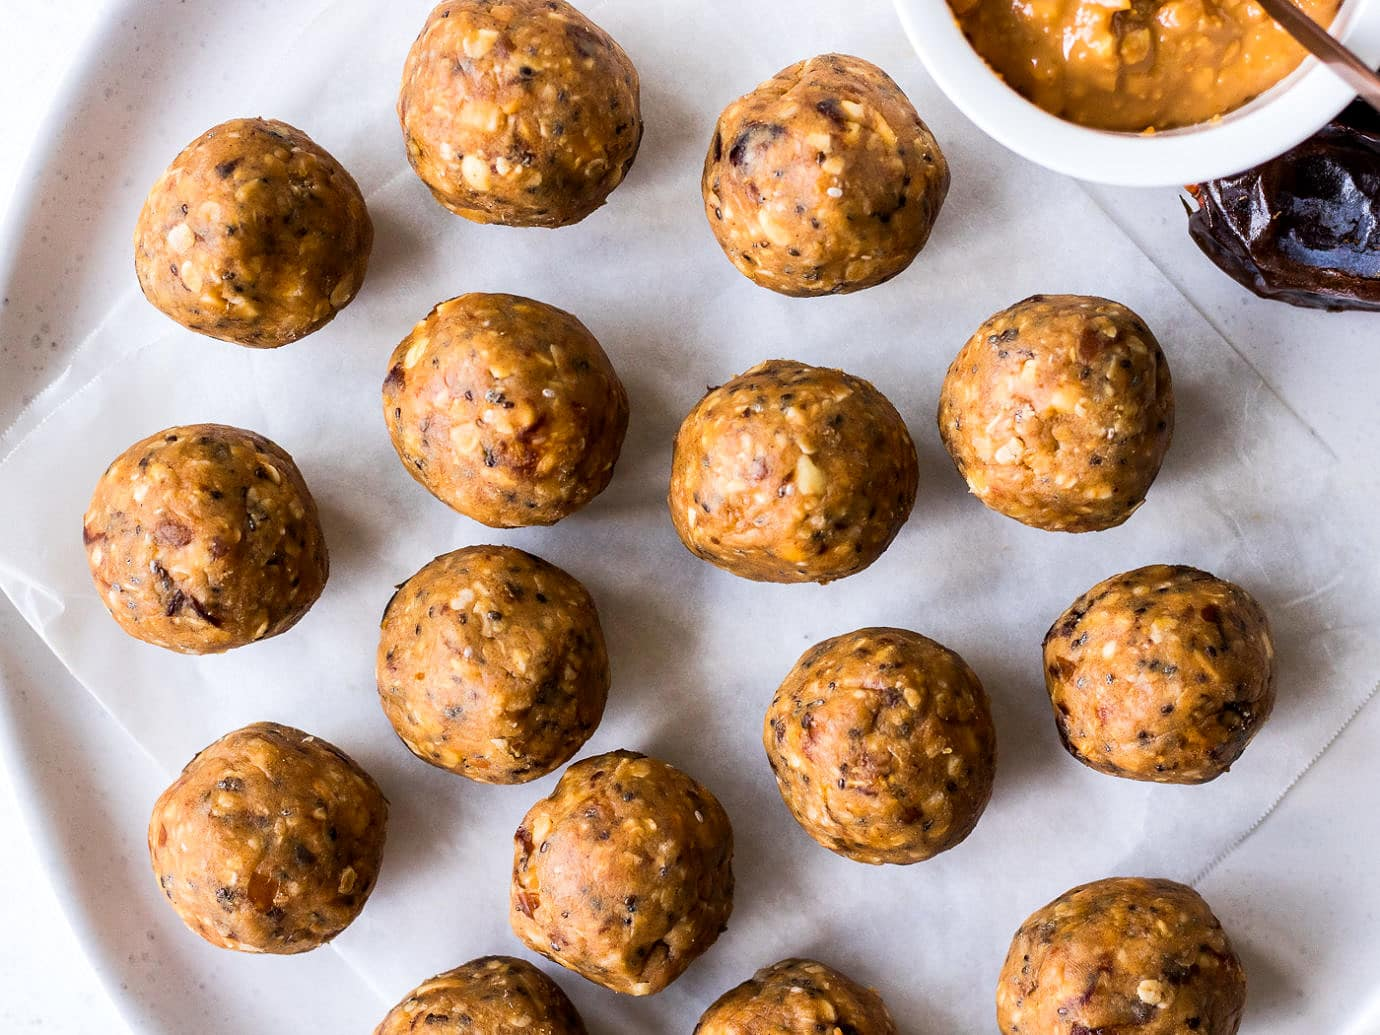 Peanut butter date energy balls arranged on a white ceramic plate